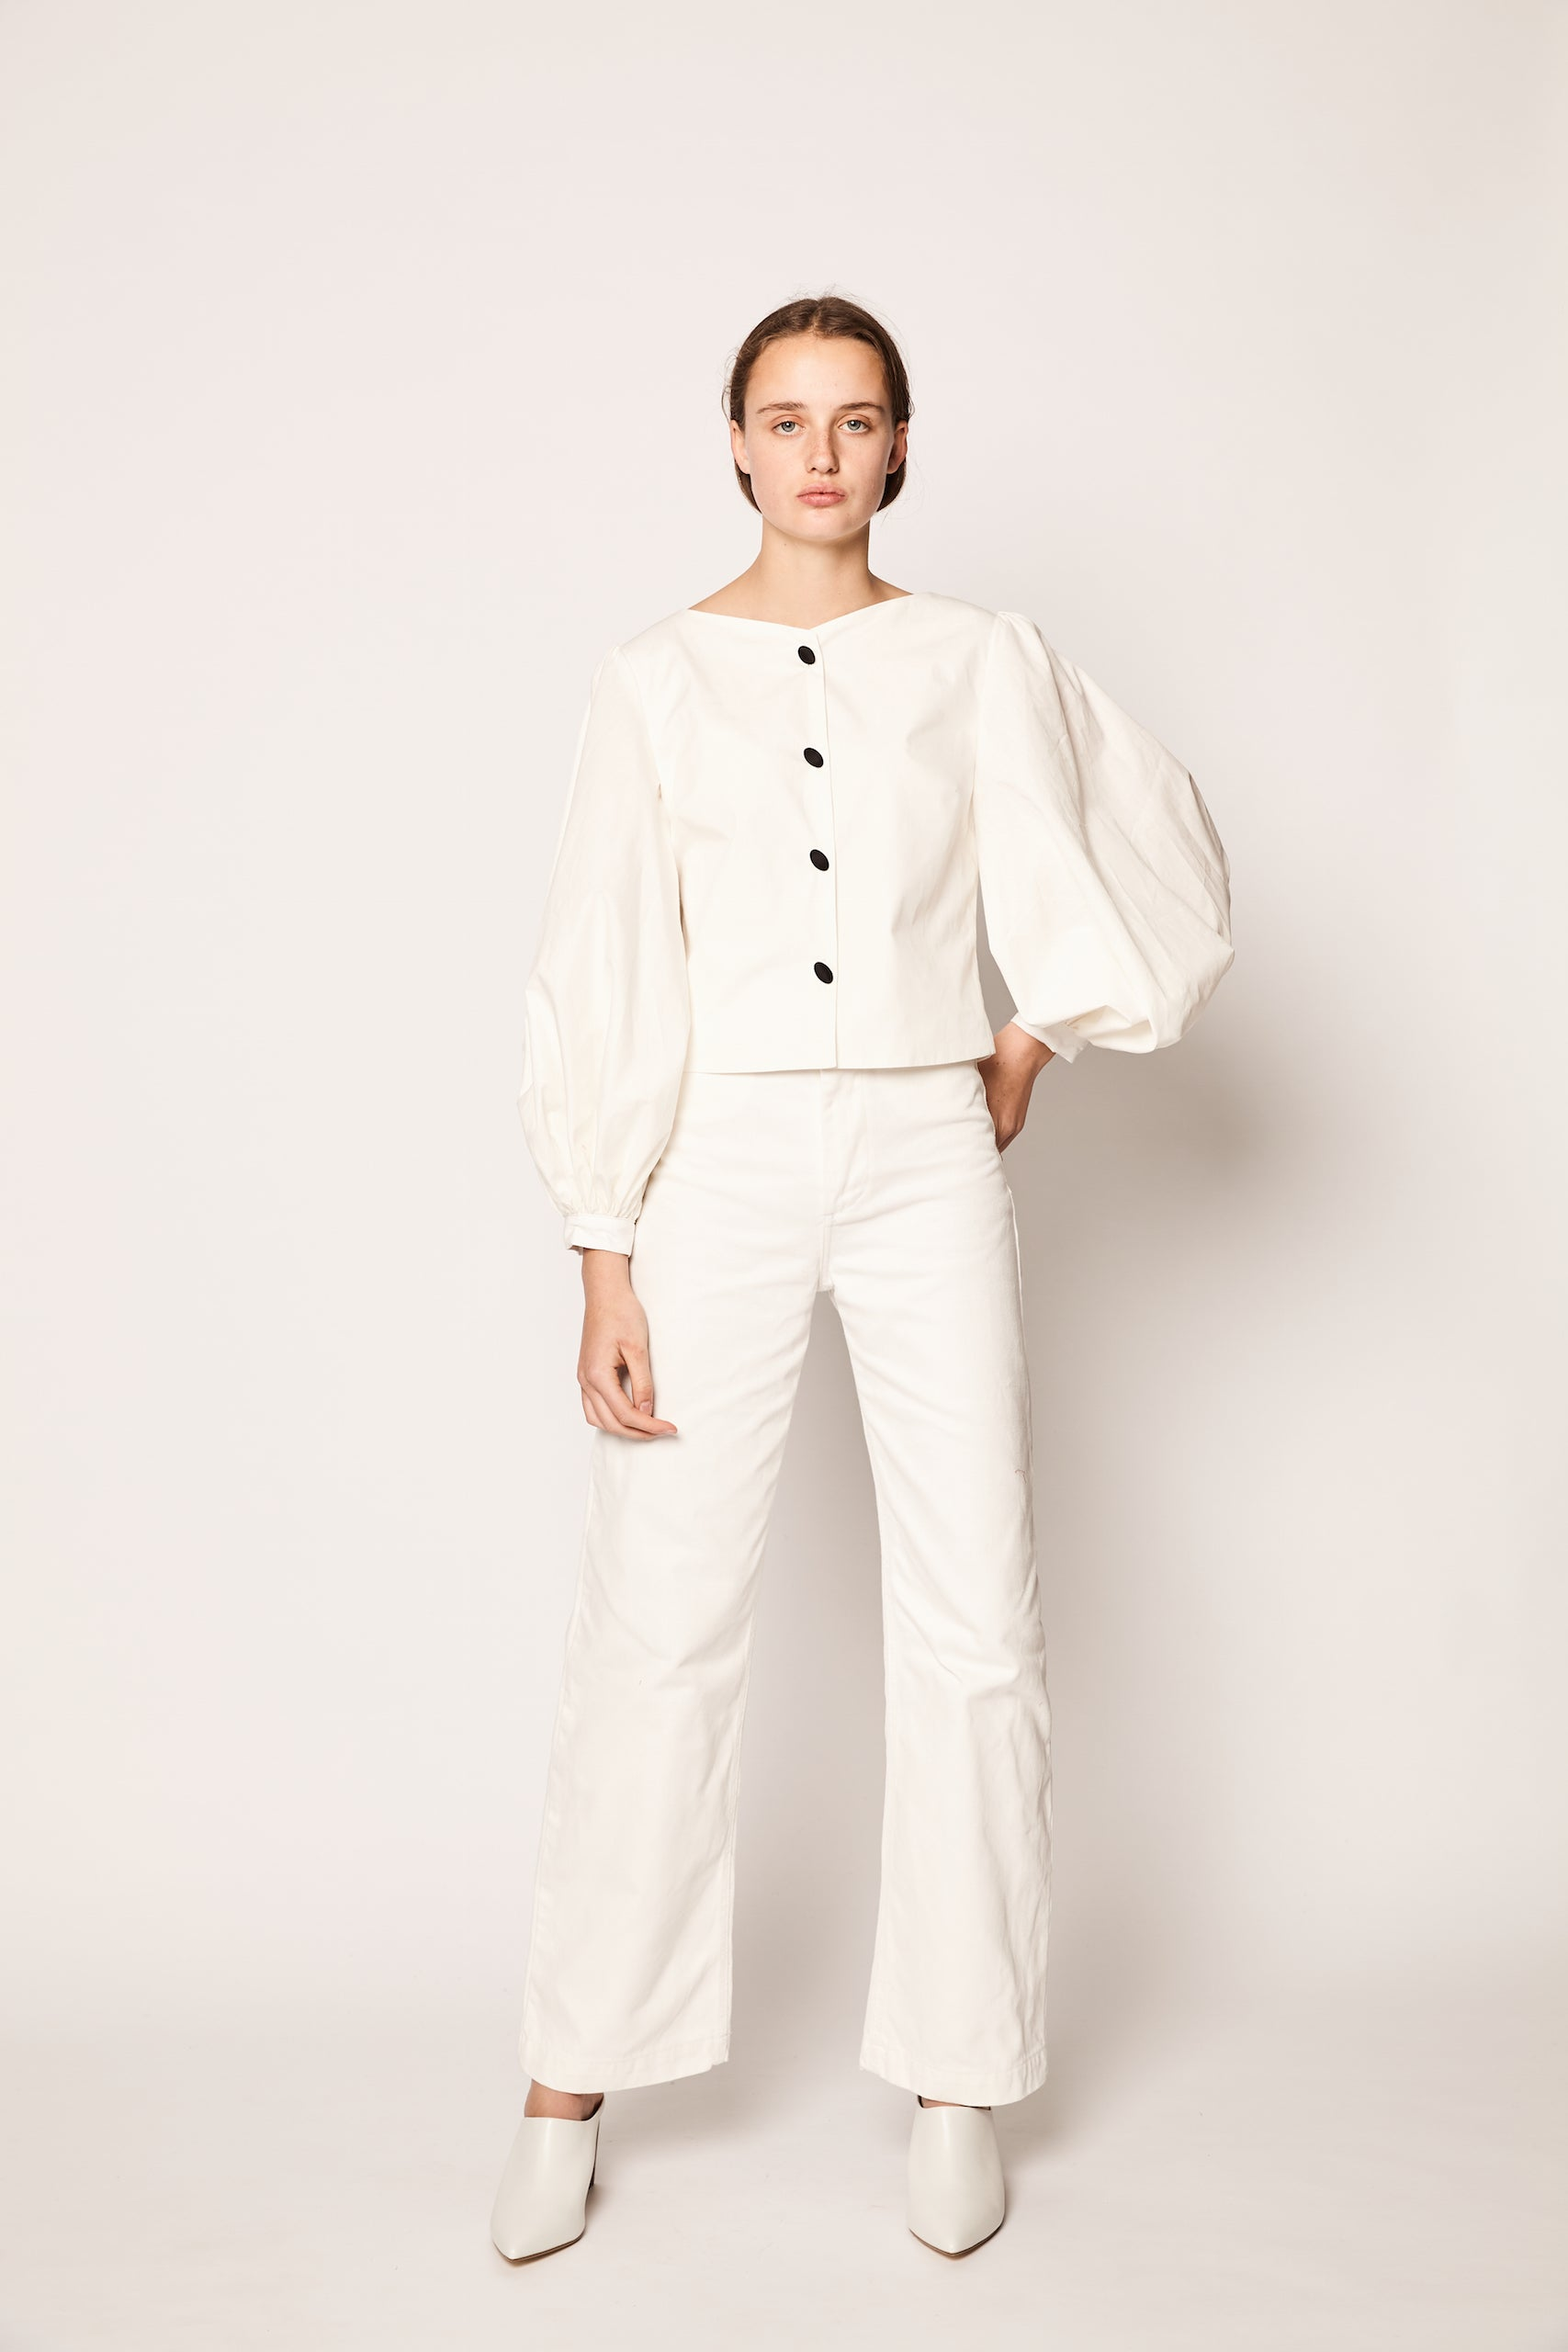 Blanca Blouse - White